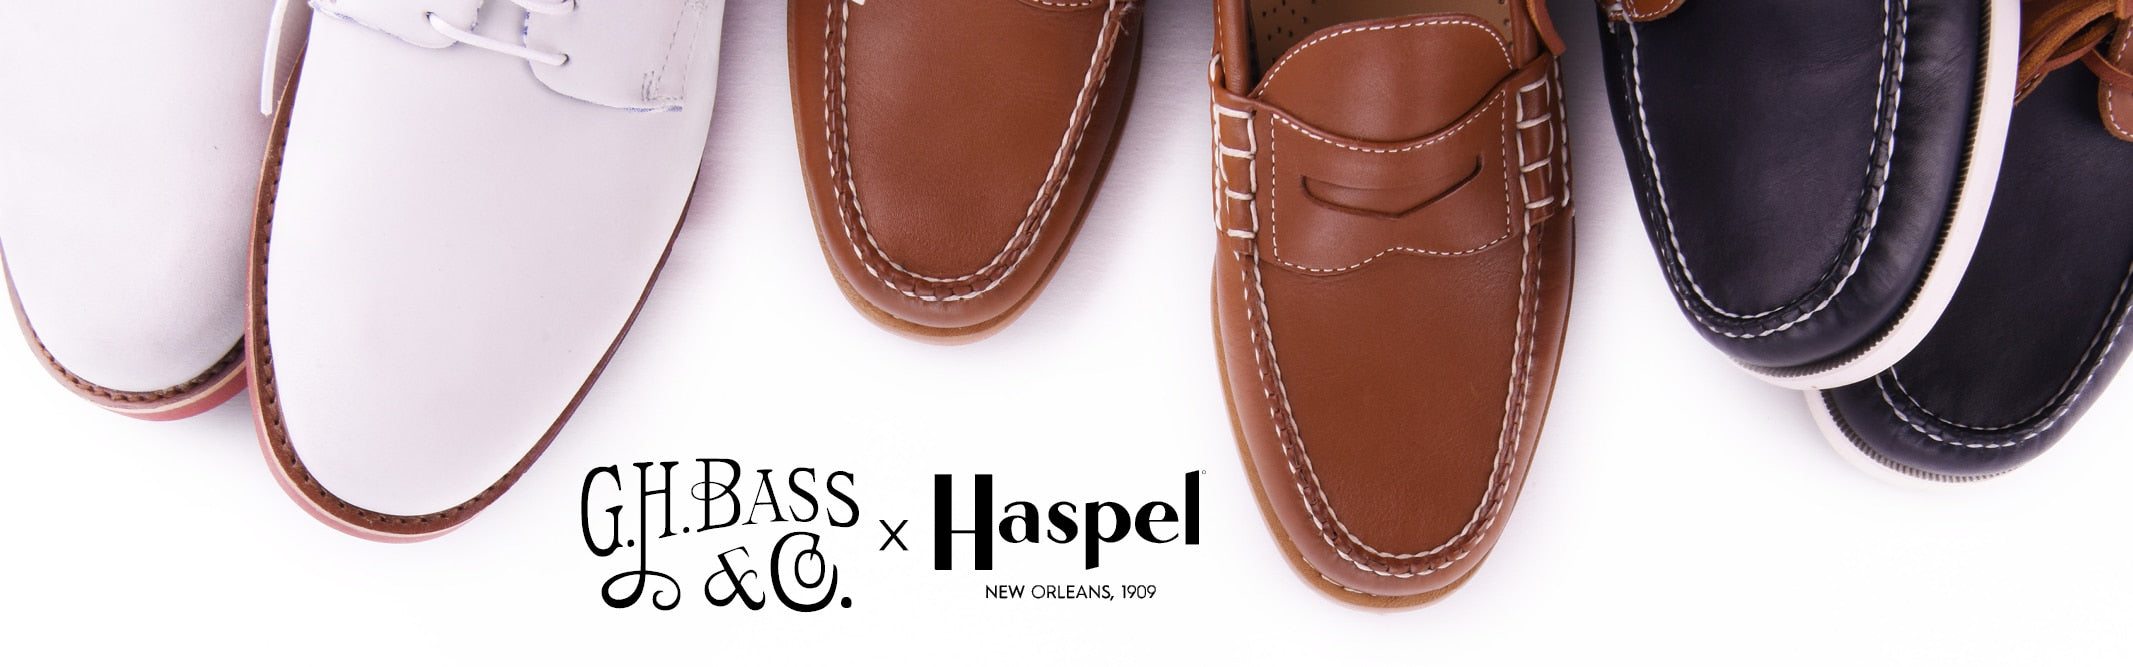 Bass Shoes Header Image